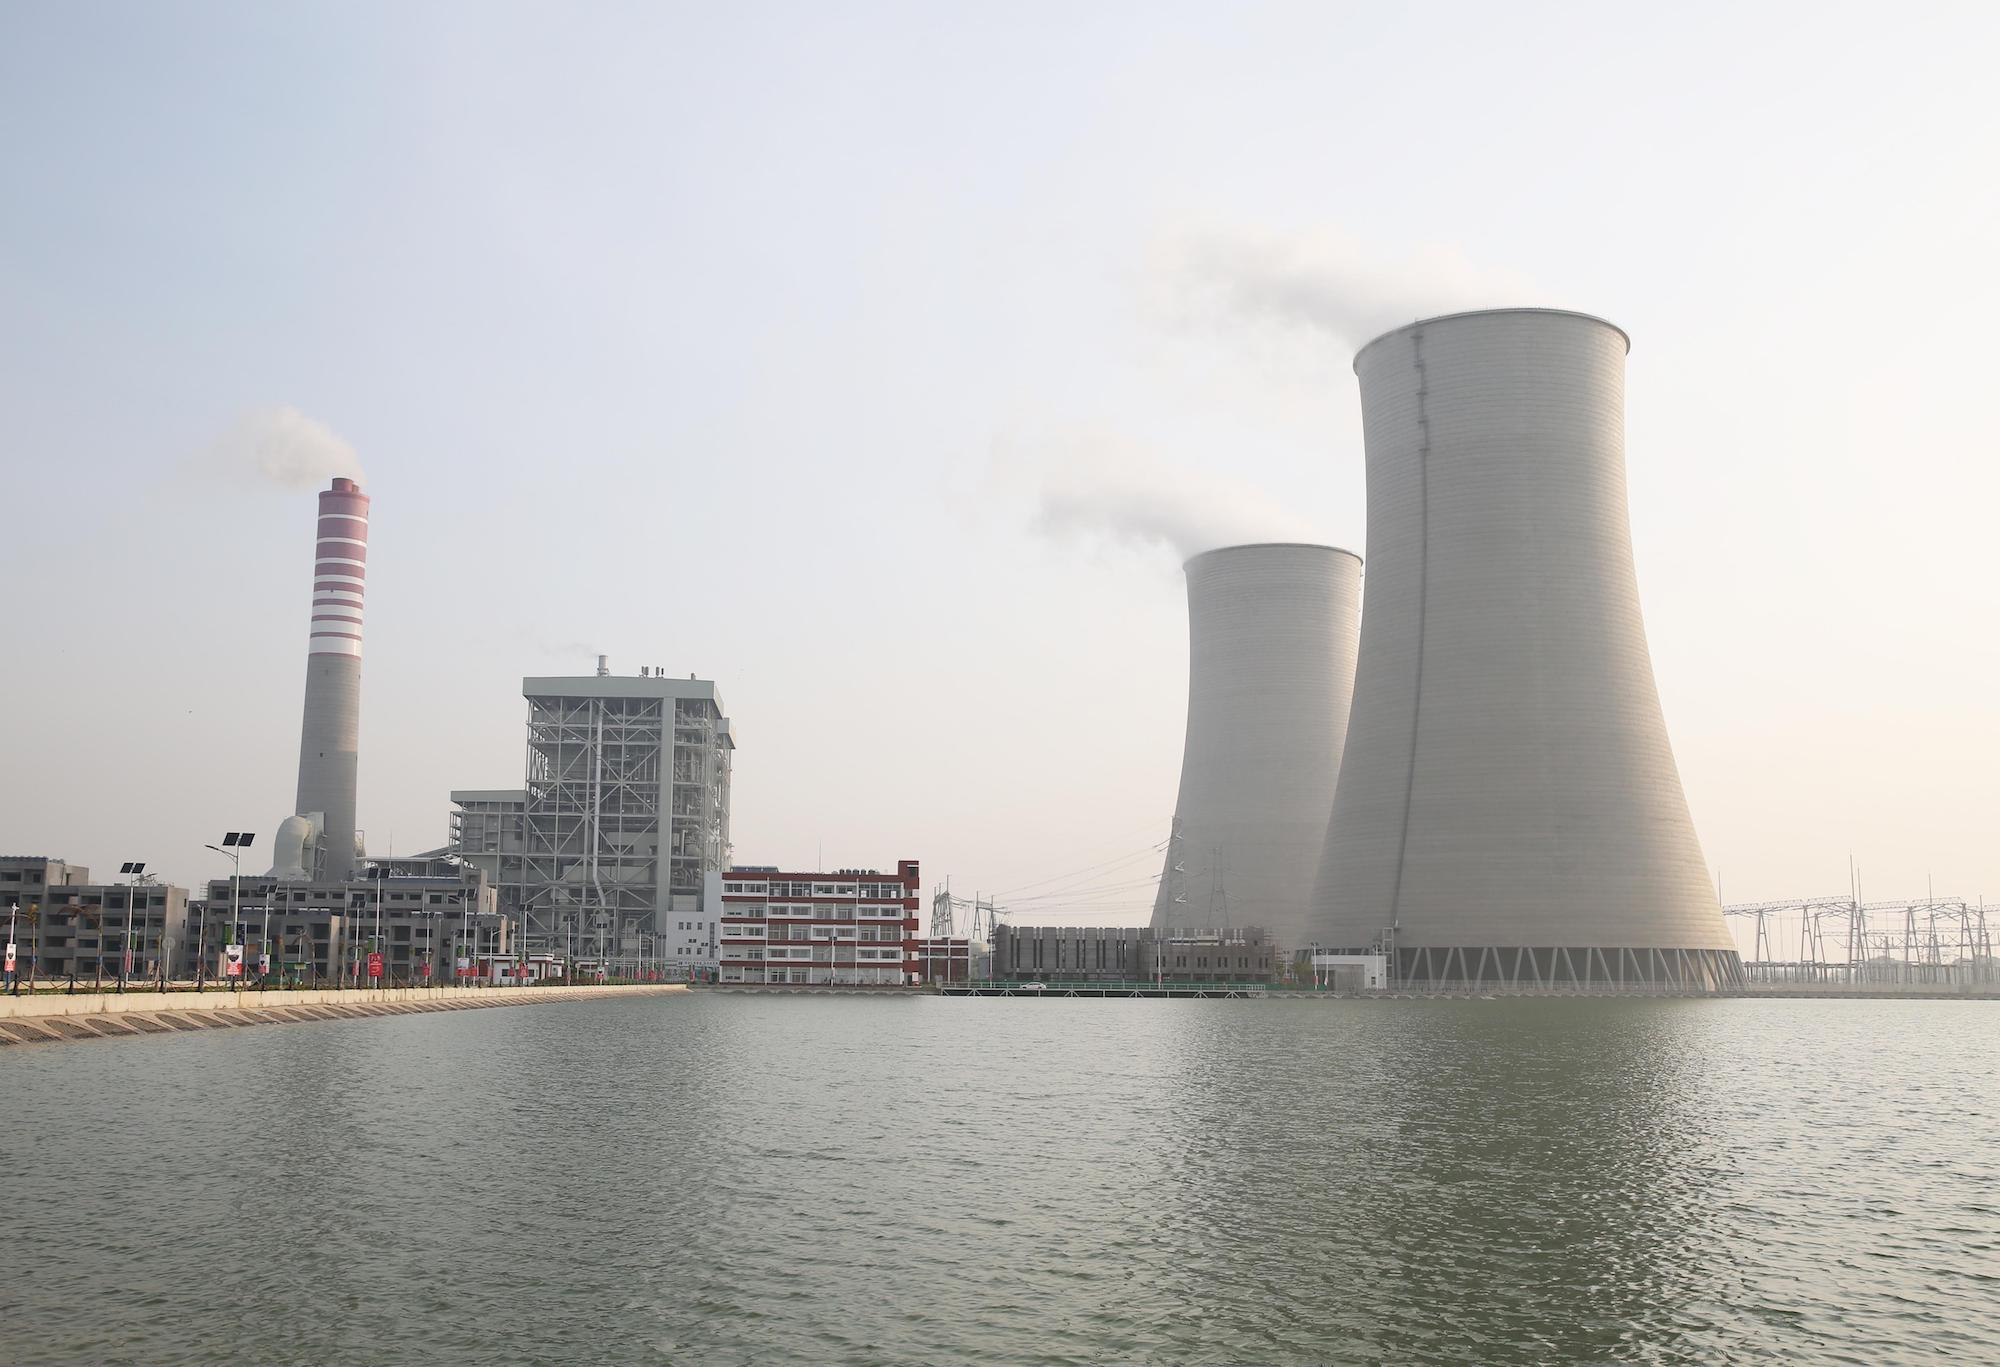 Sahiwal coal power plant in Punjab, Pakistan